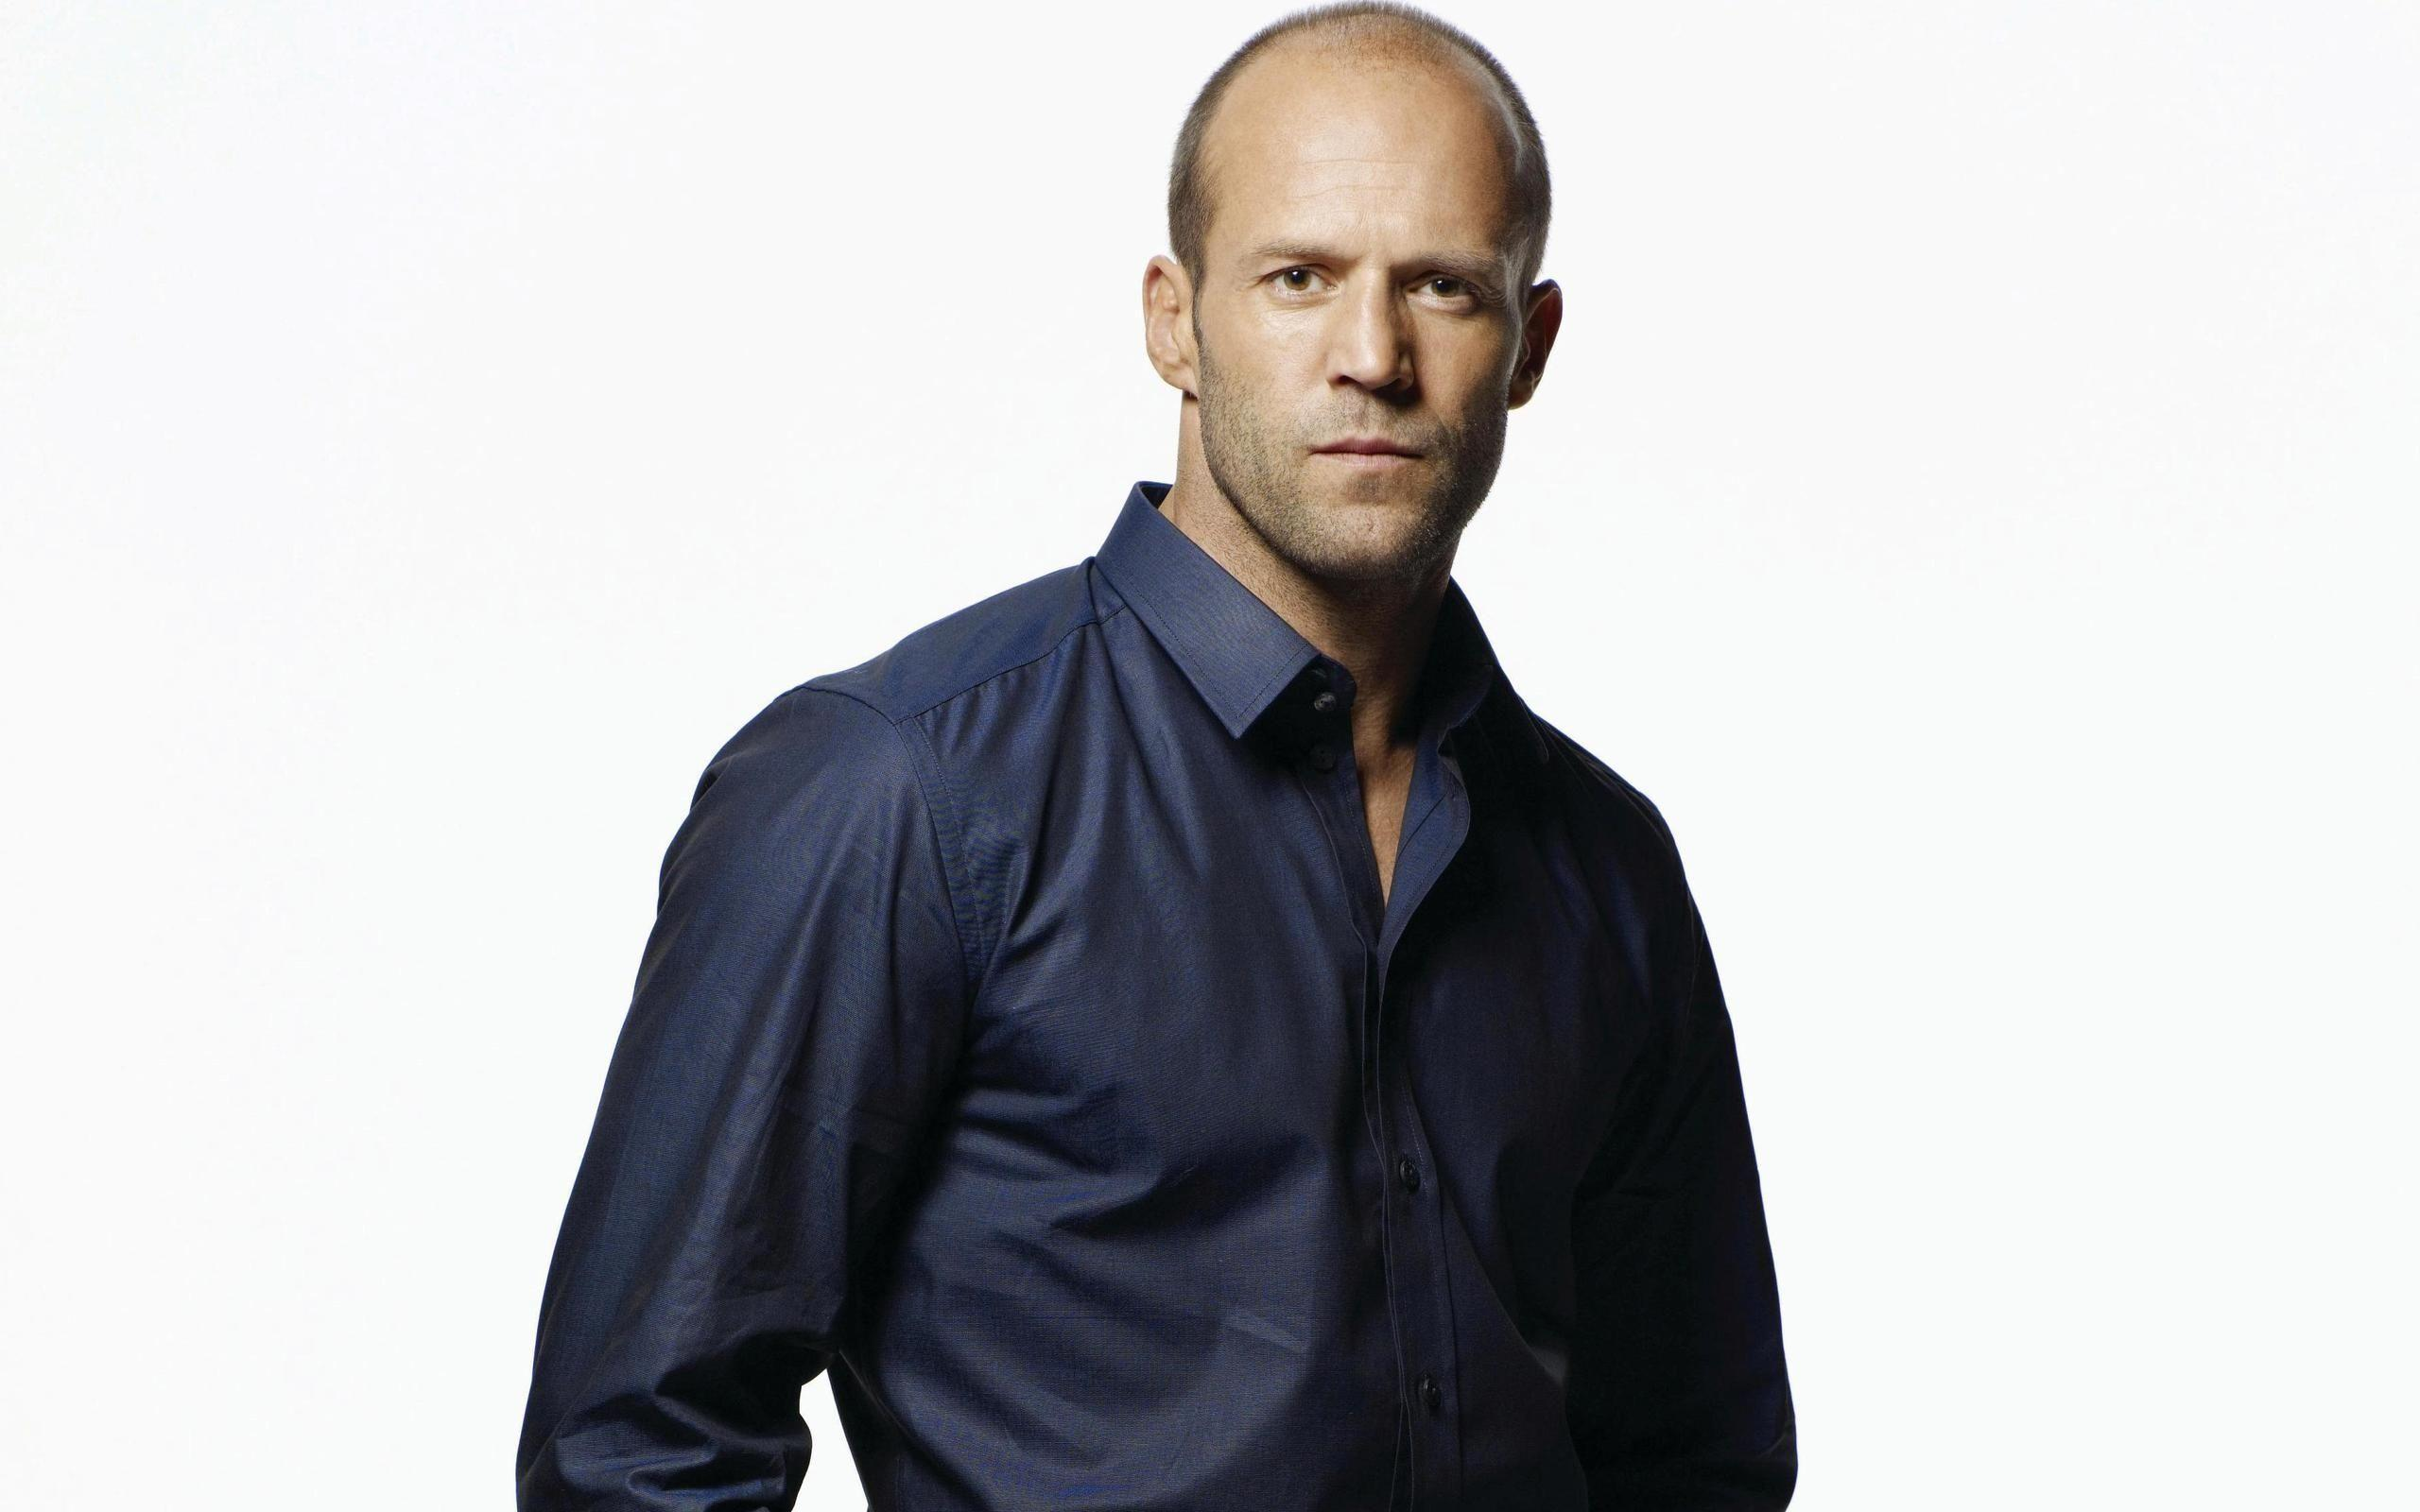 Jason Statham Wallpapers - Full HD wallpaper search